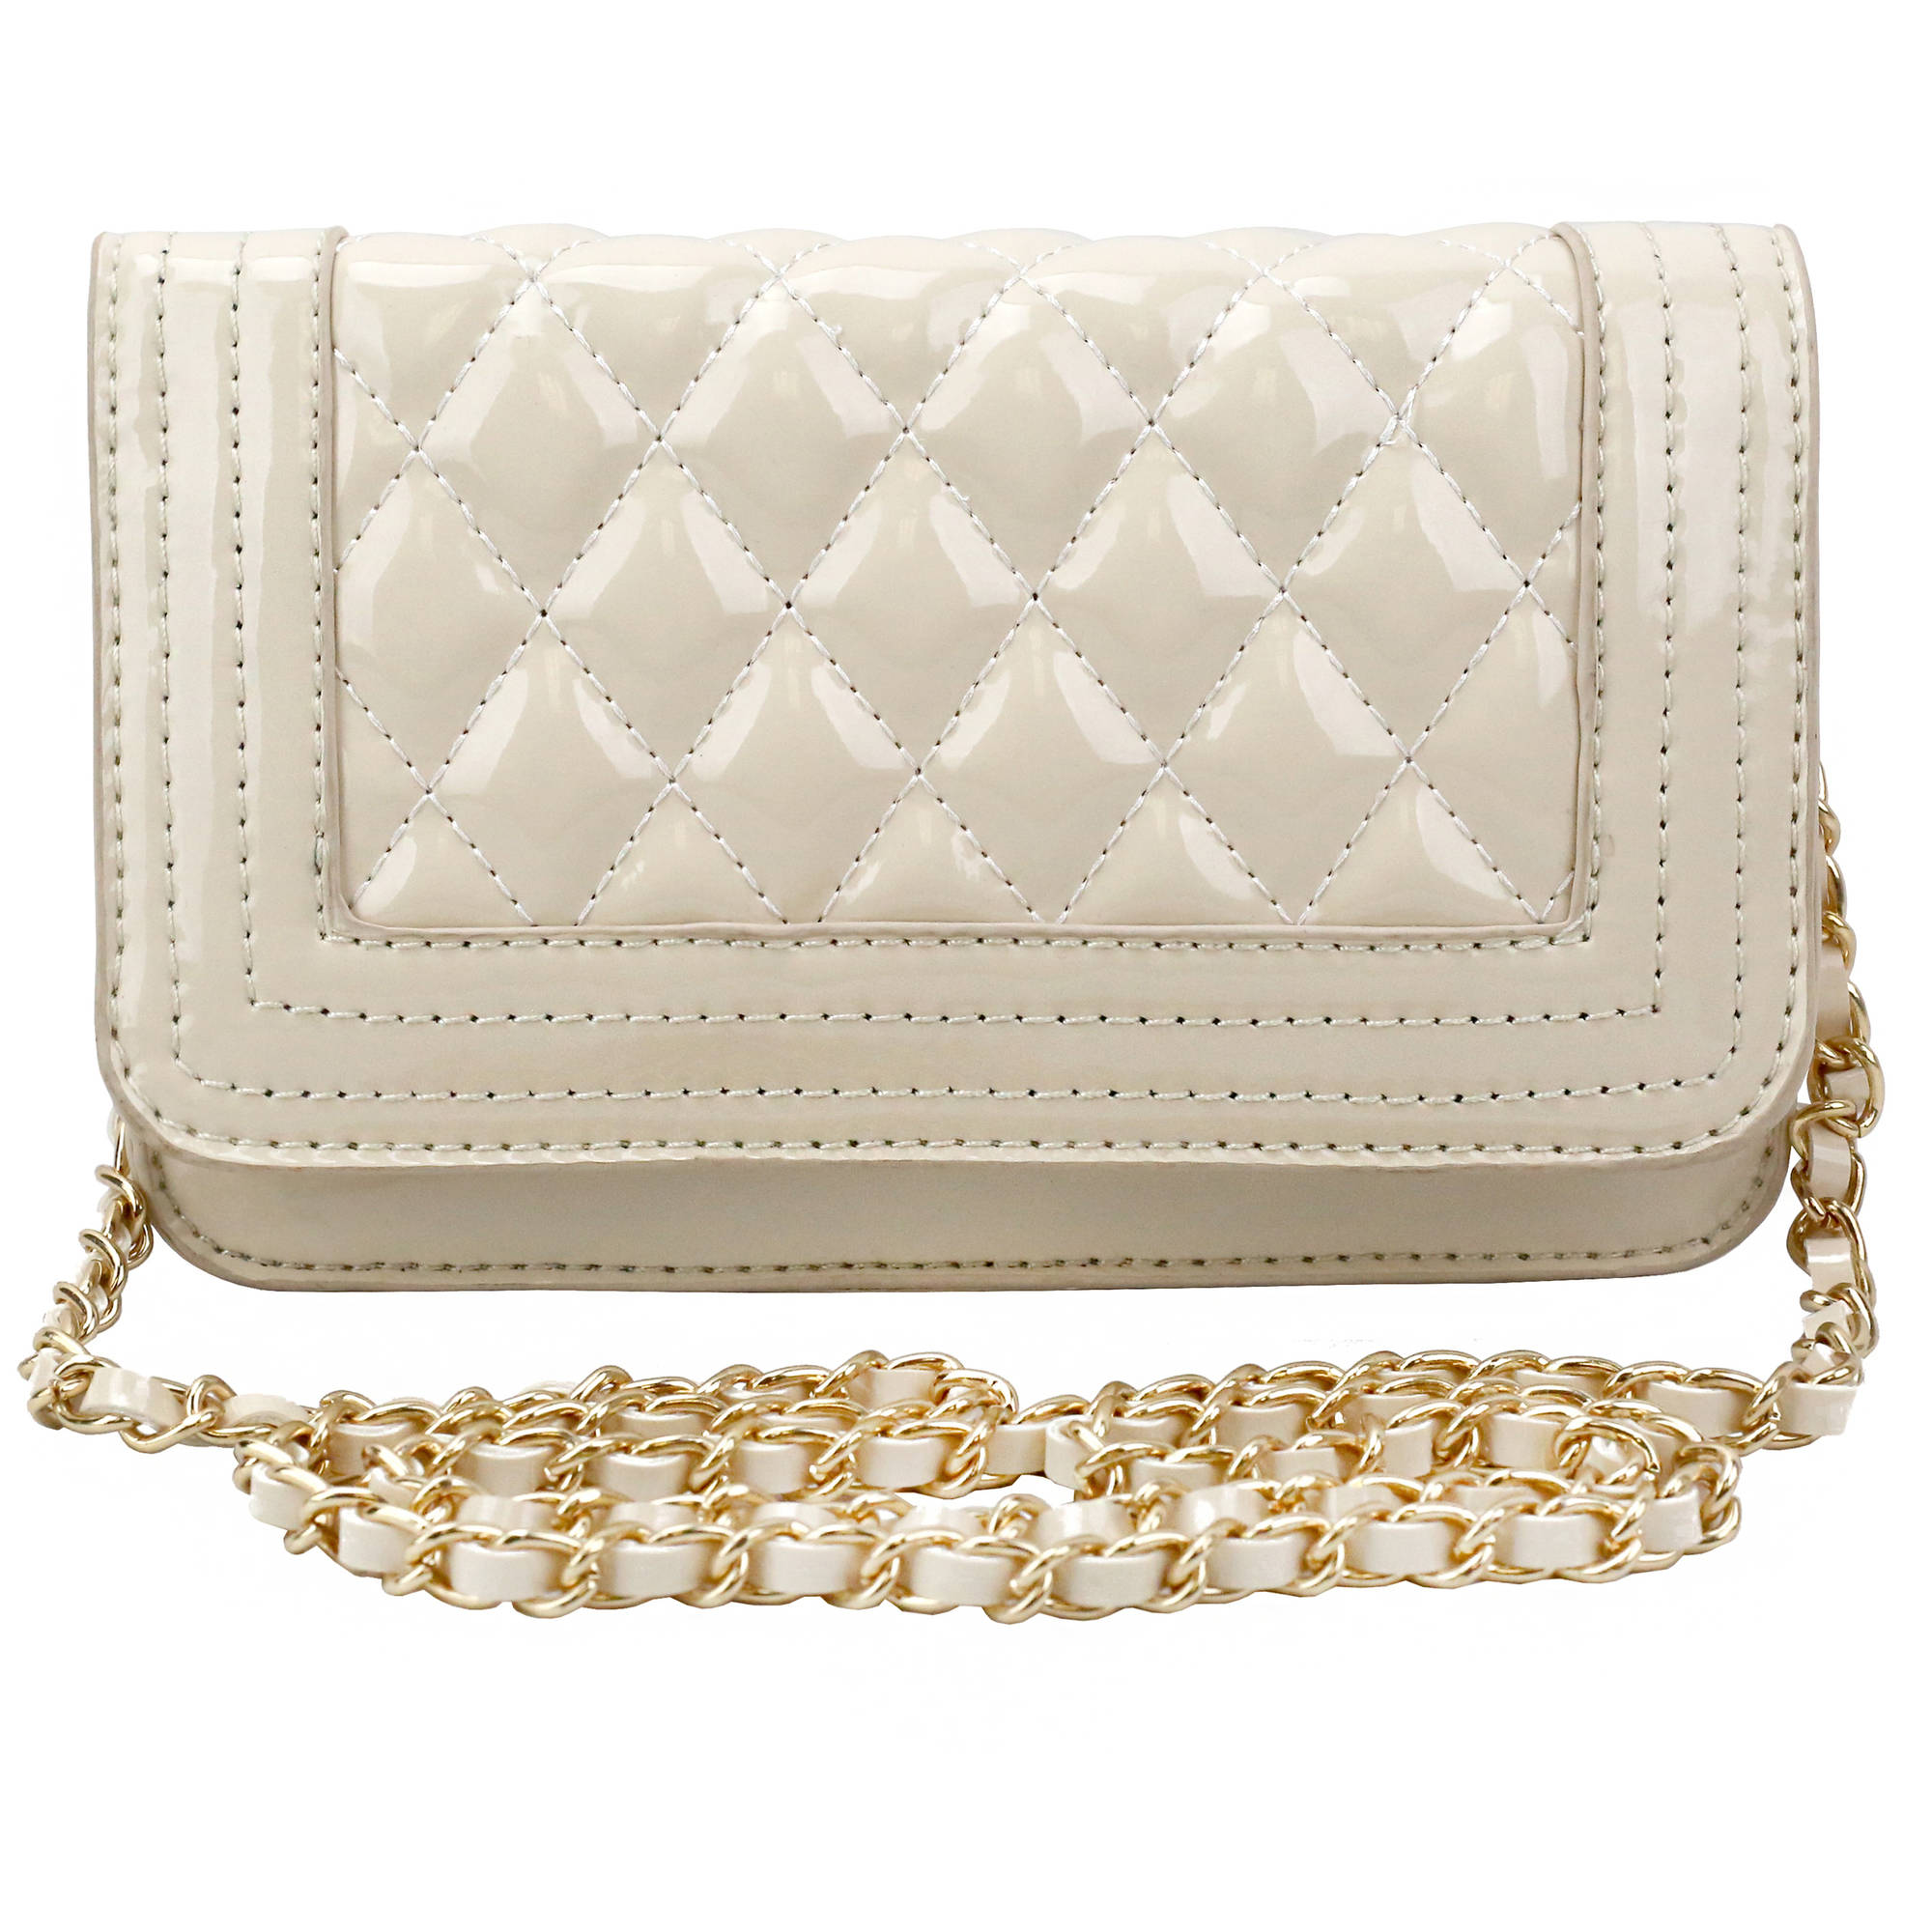 Olivia Miller Women's Quilt Mini Shoulder Handbag